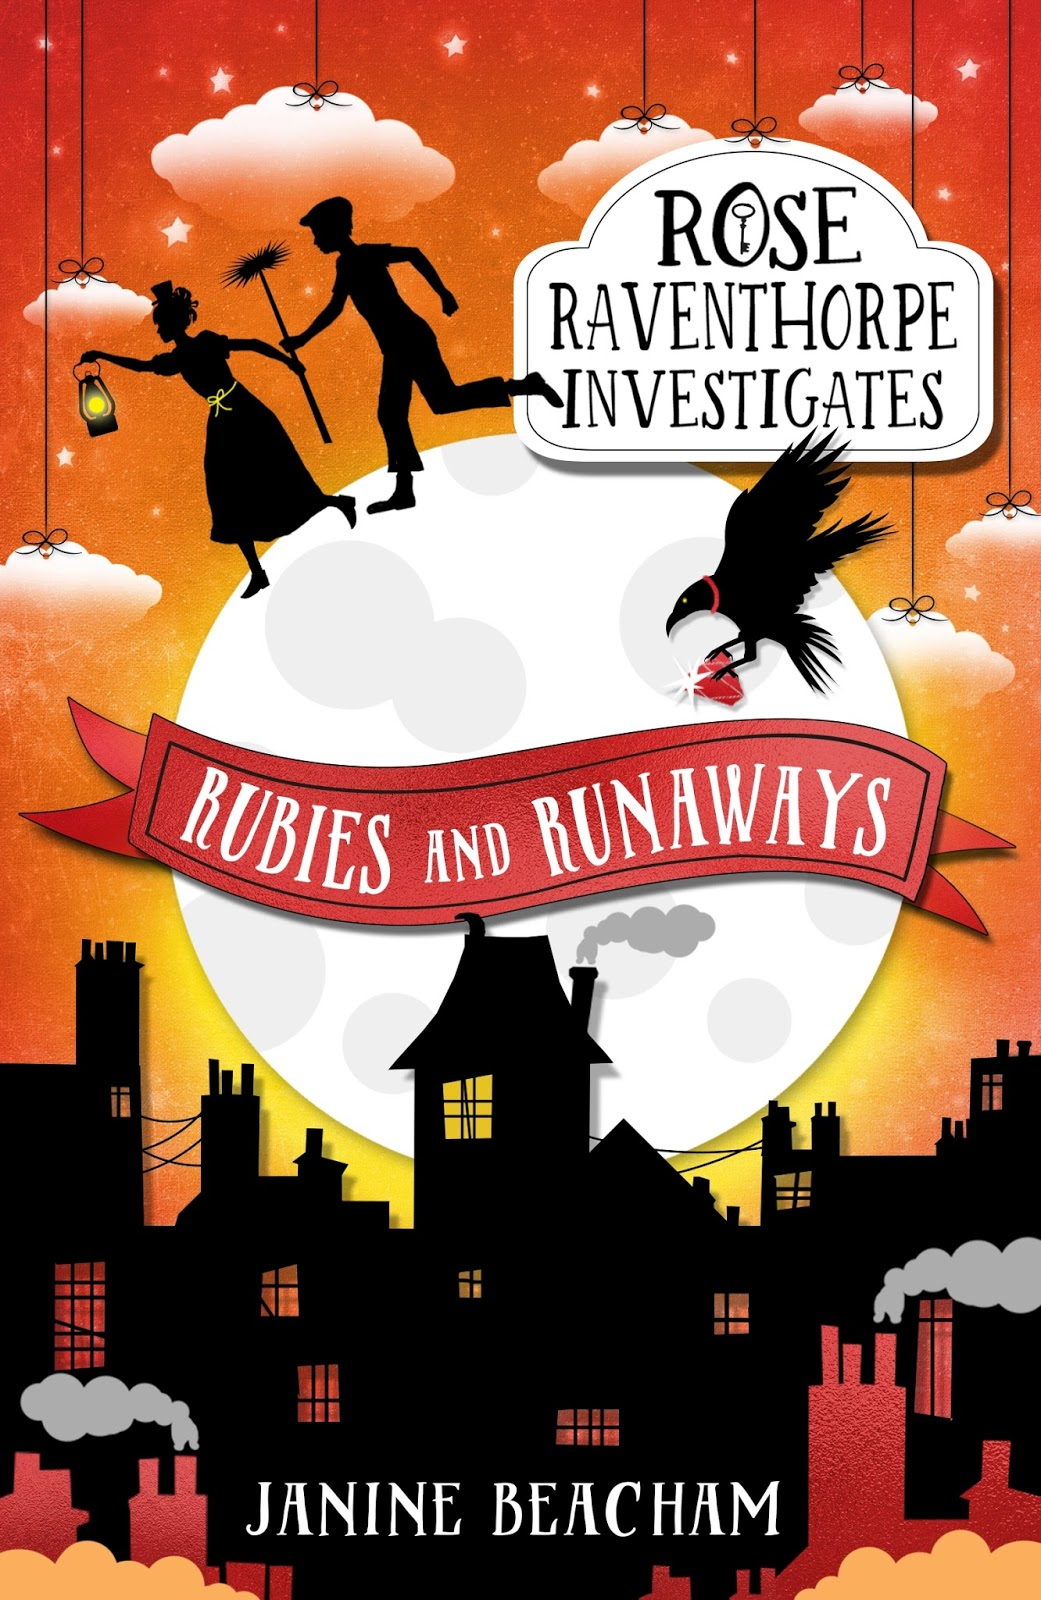 Rose Raventhorpe And The Secret Society Of Crimesolving Butlers Are At It  Again! Today Is The Publication Of The Second Book In The Series By Little  Brown